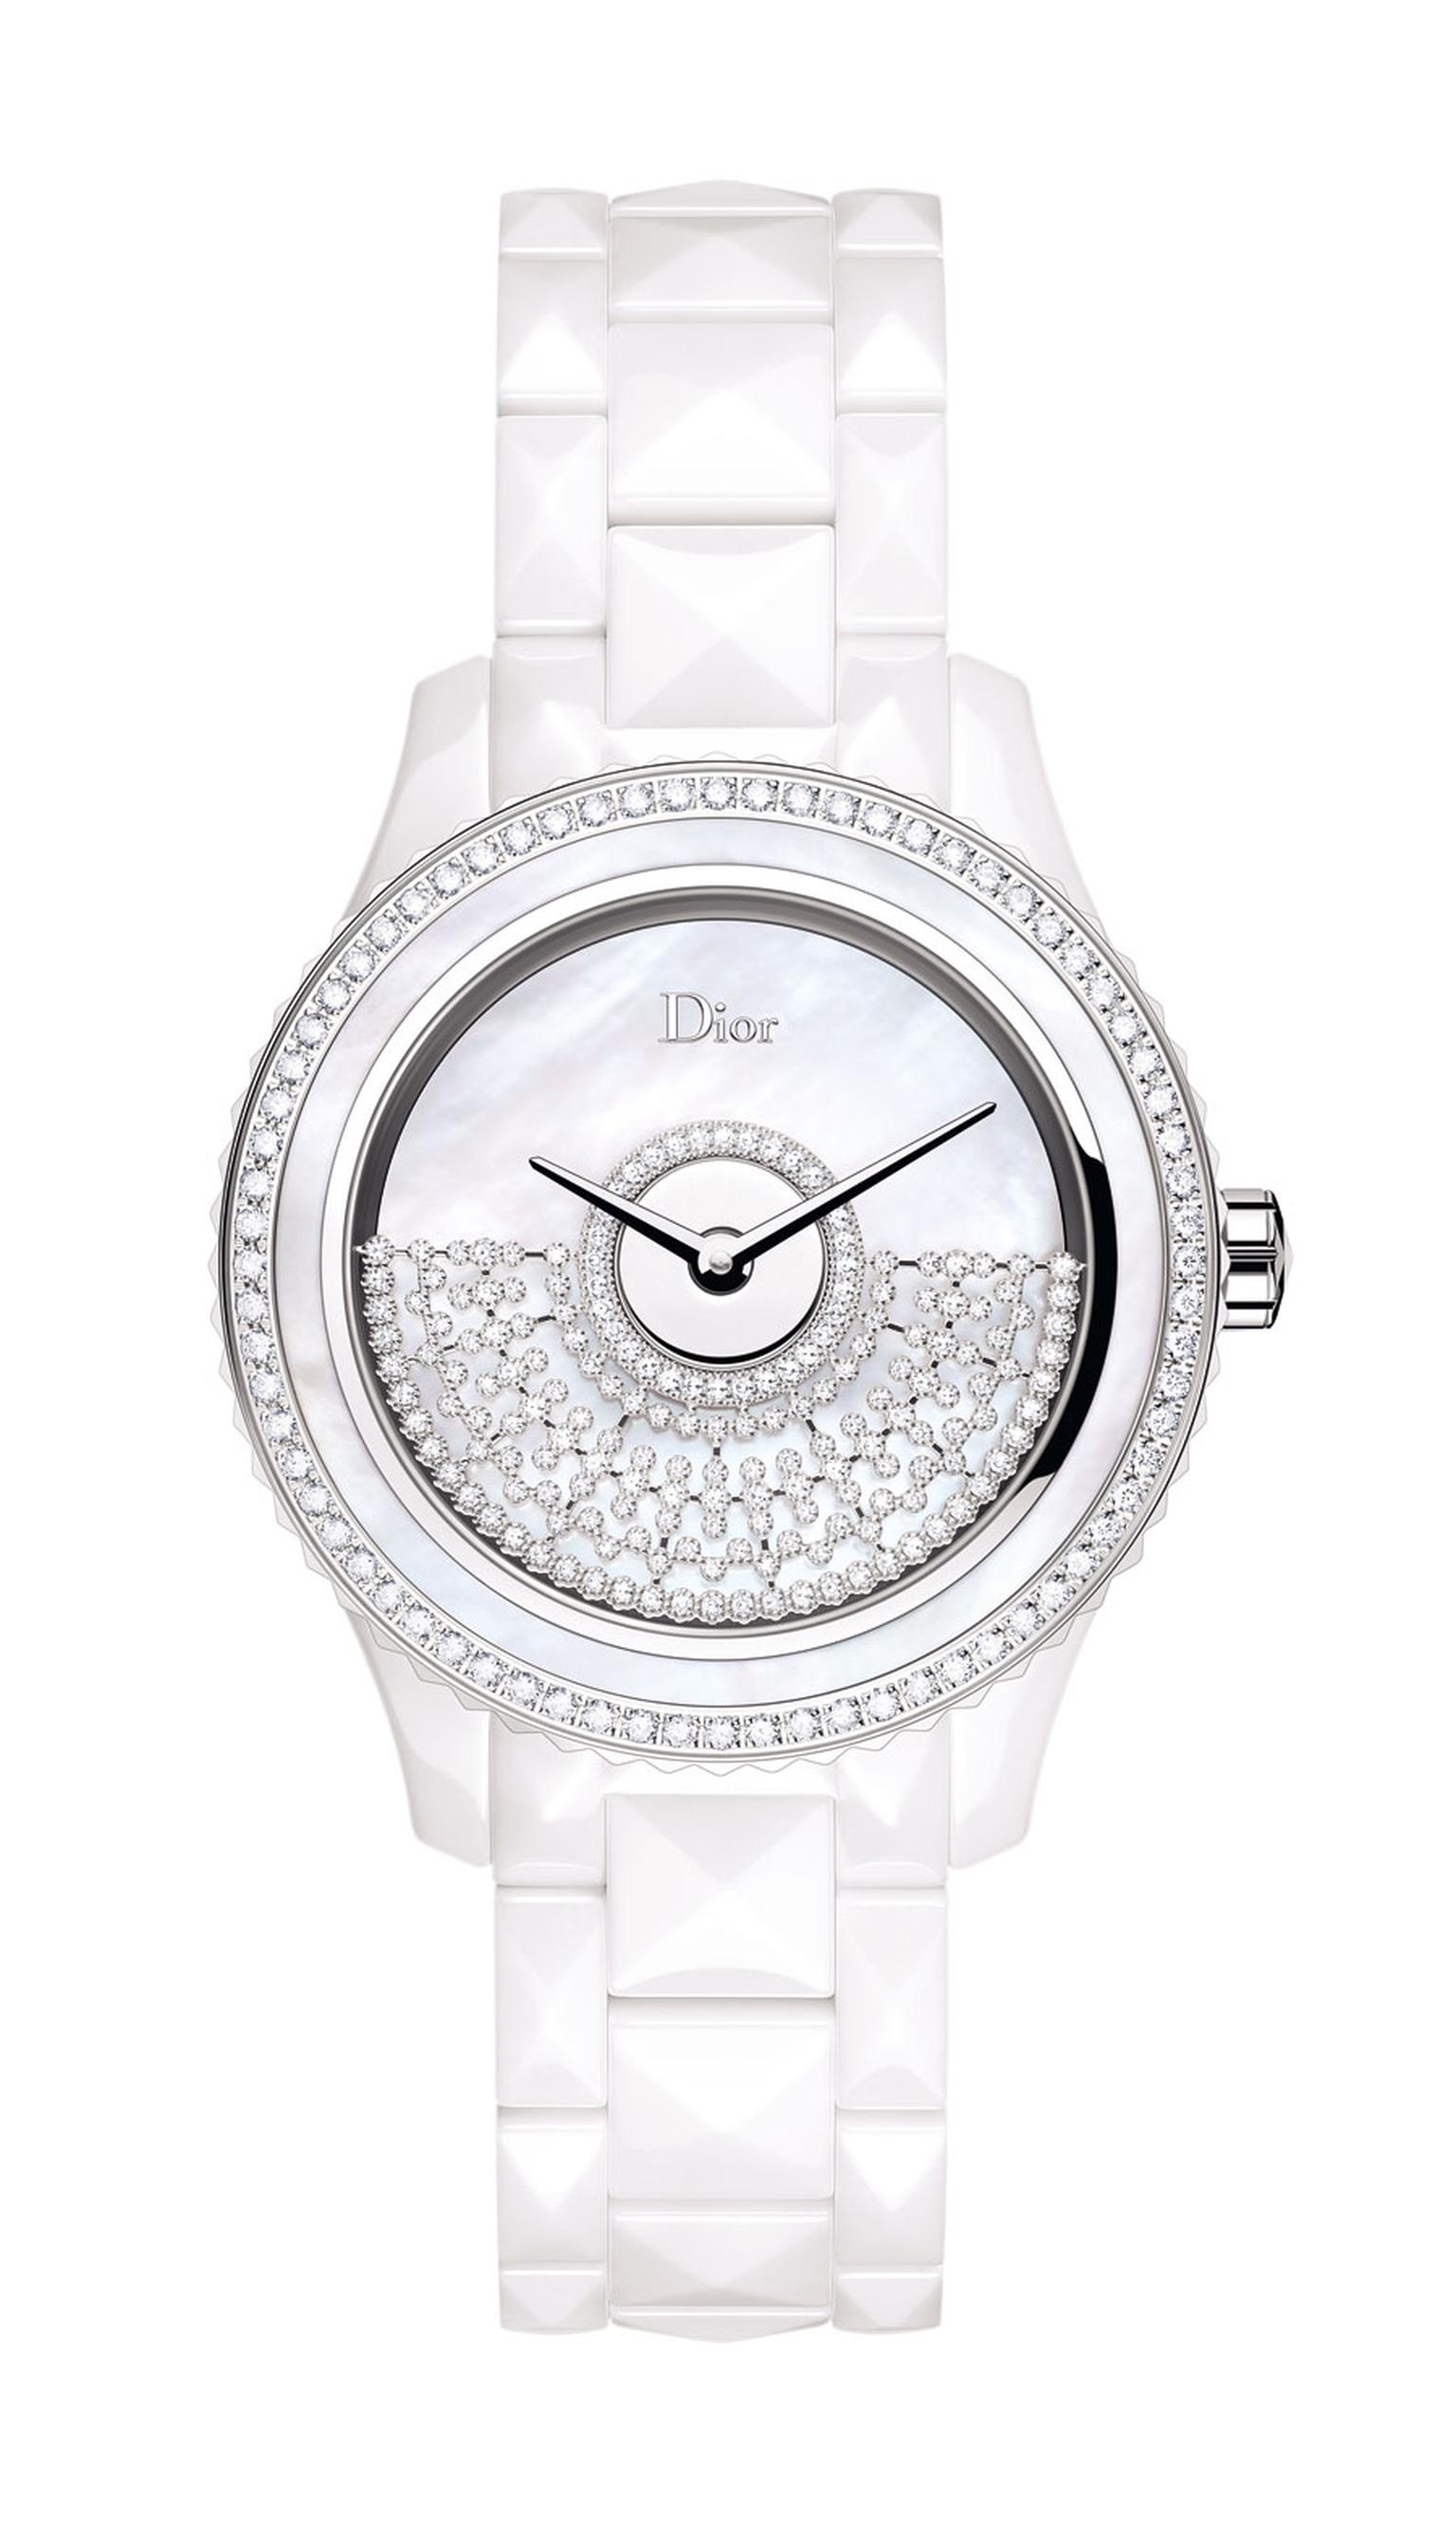 DIOR-VIII-GRAND-BAL-RESILLE-MODEL-WHITE-38mm.jpg